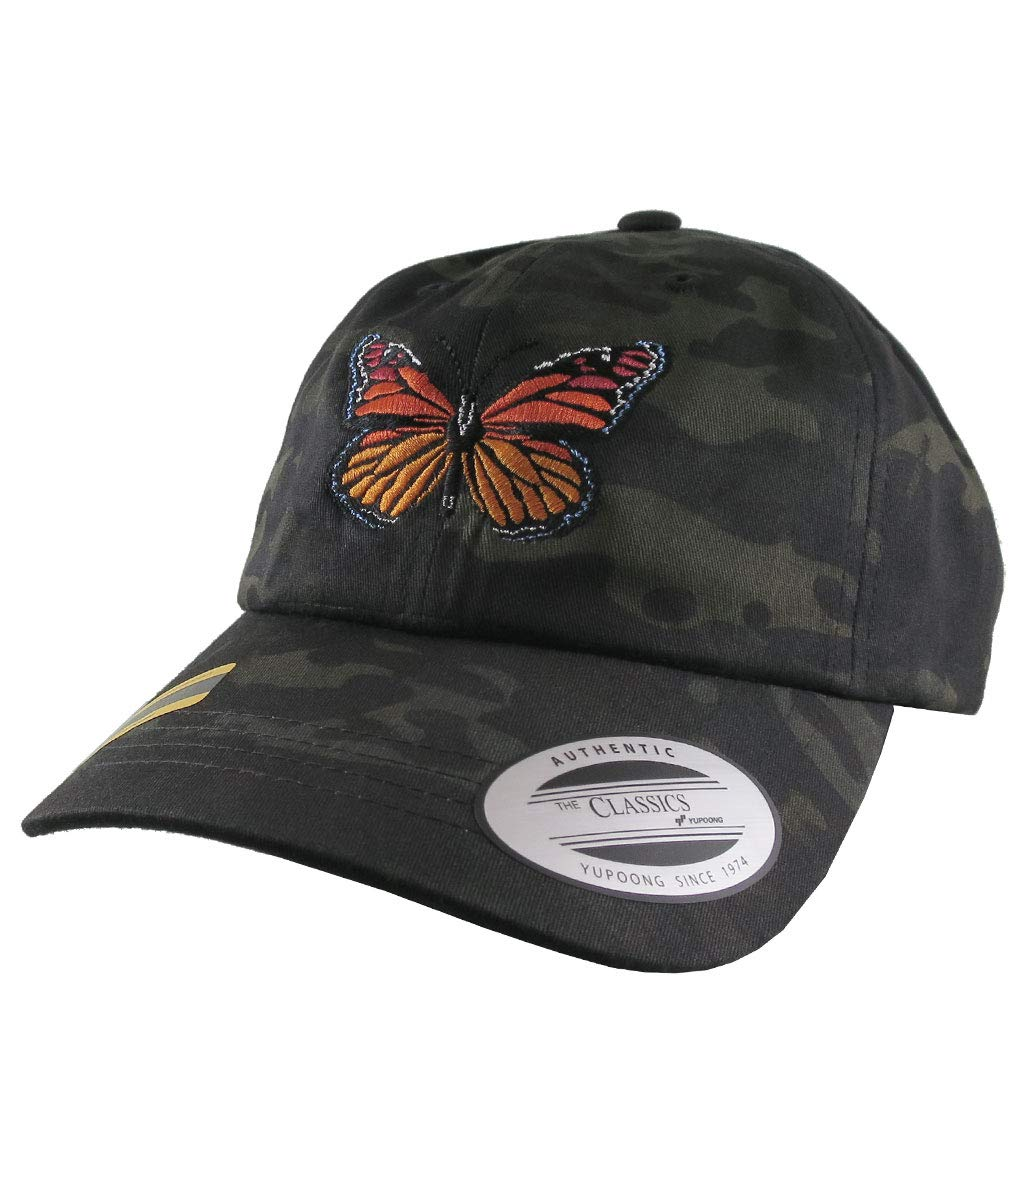 ba224de2465e97 Monarch Butterfly Embroidery on an Adjustable Black Multicam Yupoong  Unstructured Classic Baseball Cap Dad Hat Style: Amazon.ca: Handmade